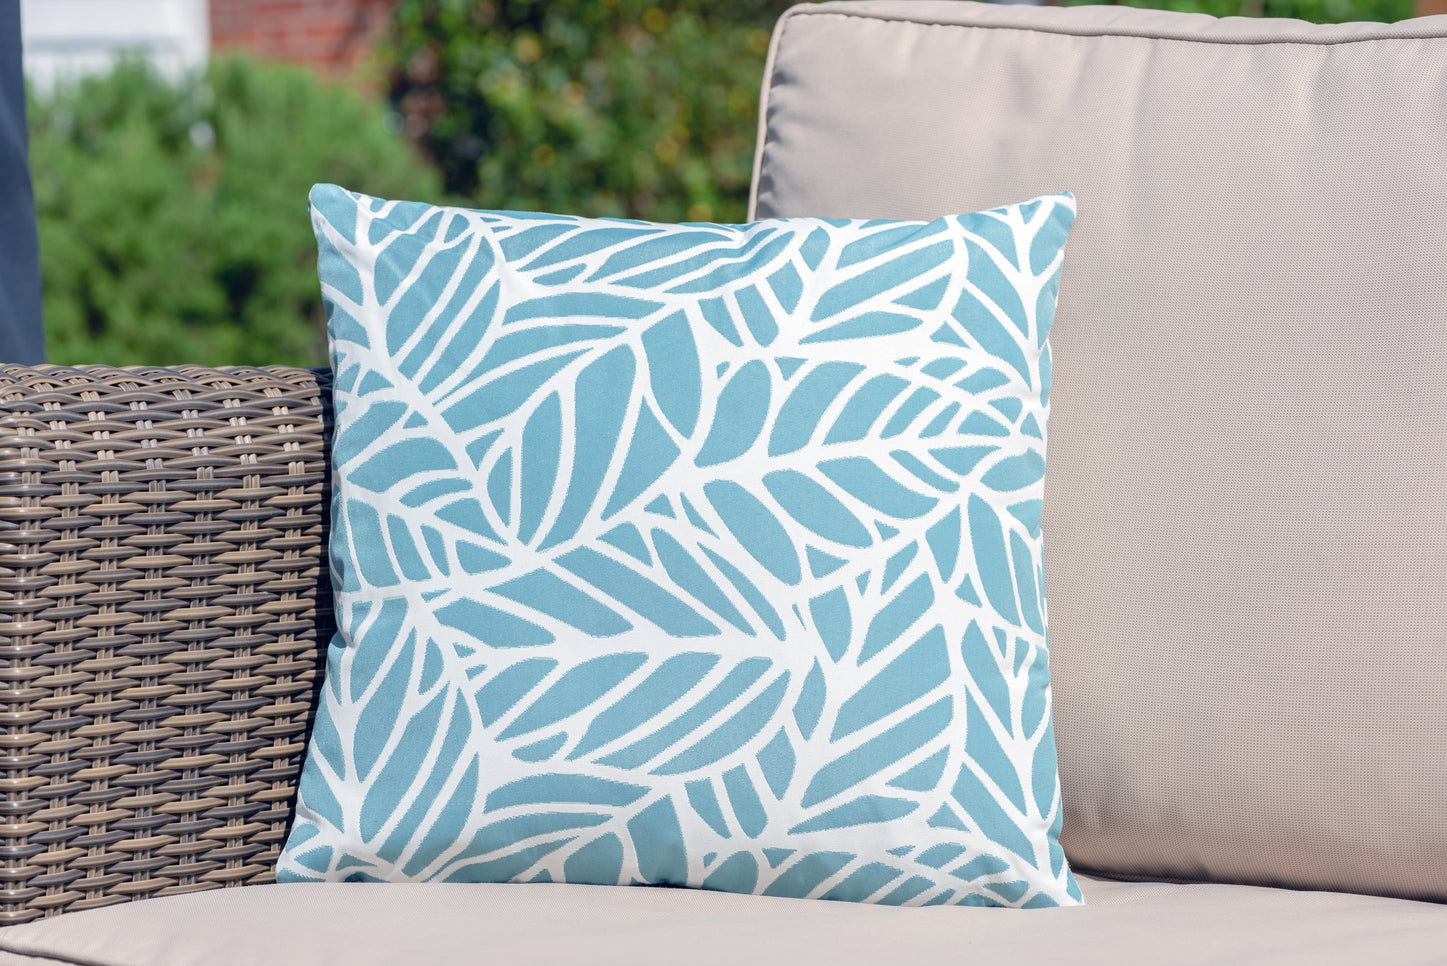 Armadillo Sun cushion in ocean blue and white palm pattern